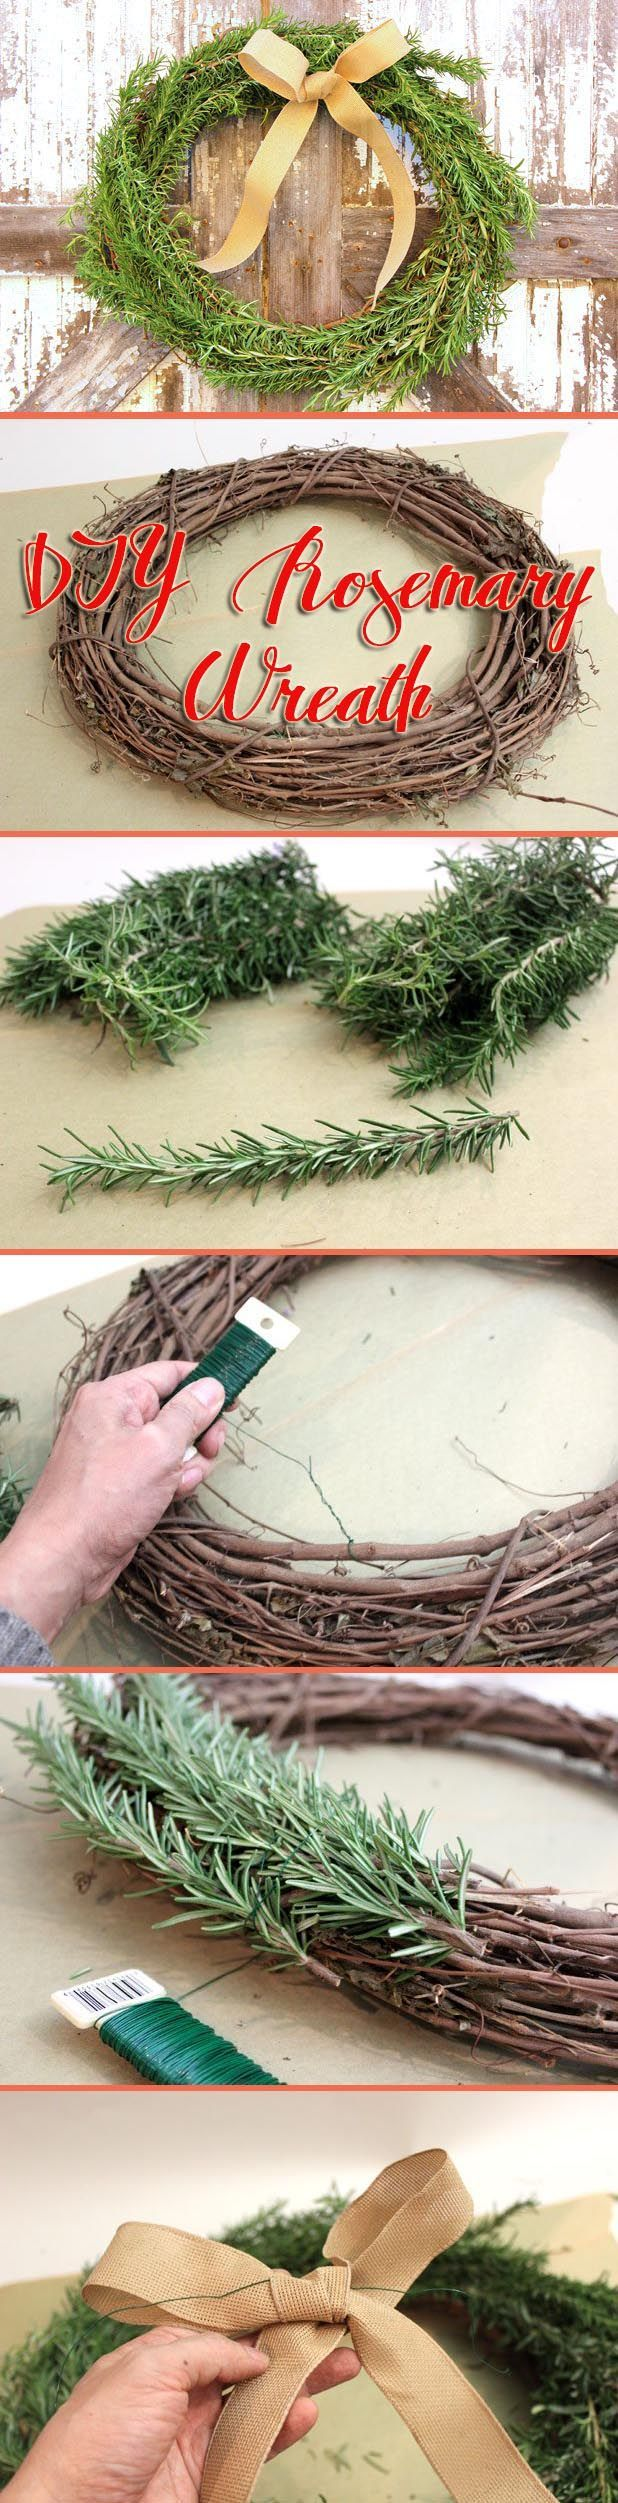 A DIY wreath that is as beautiful as it is fragrant! Fresh rosemary can fill your home with this stylish and easy to make wreath. How to instructions here: www.ehow.com/...